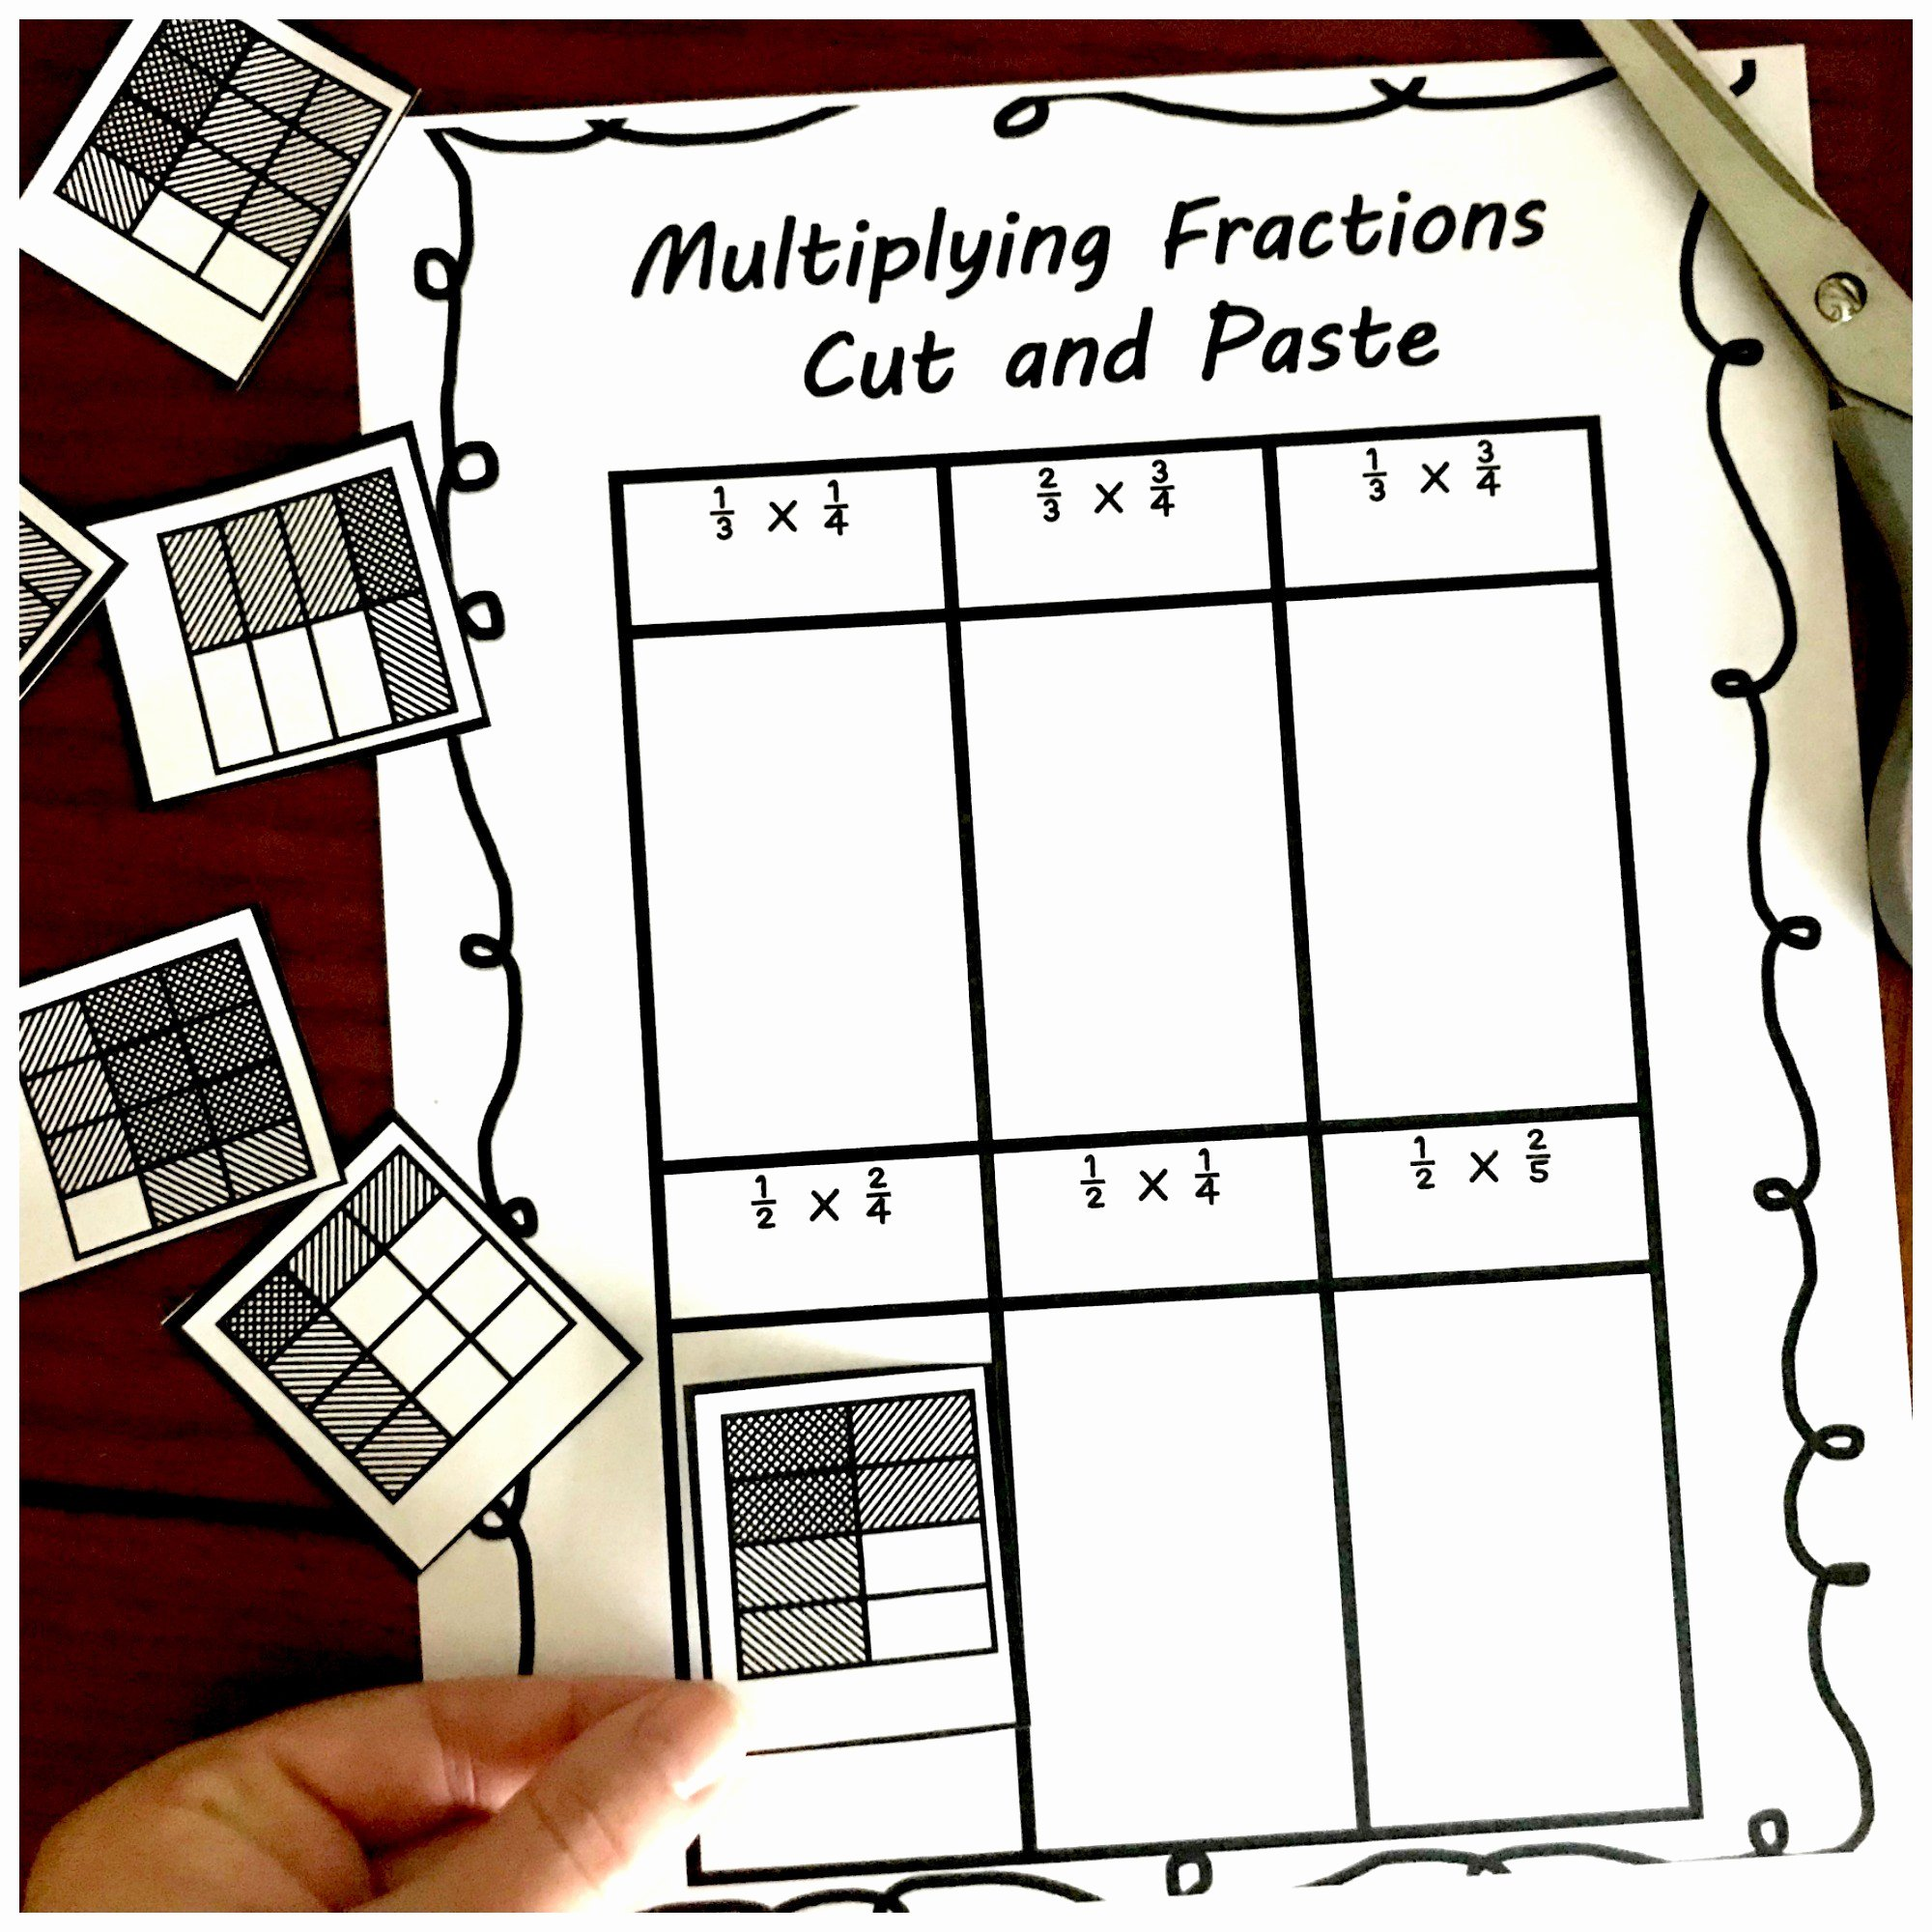 Multiplying Fractions area Model Worksheet Beautiful 3 Cut and Paste Worksheets for Multiplying Fractions Practice